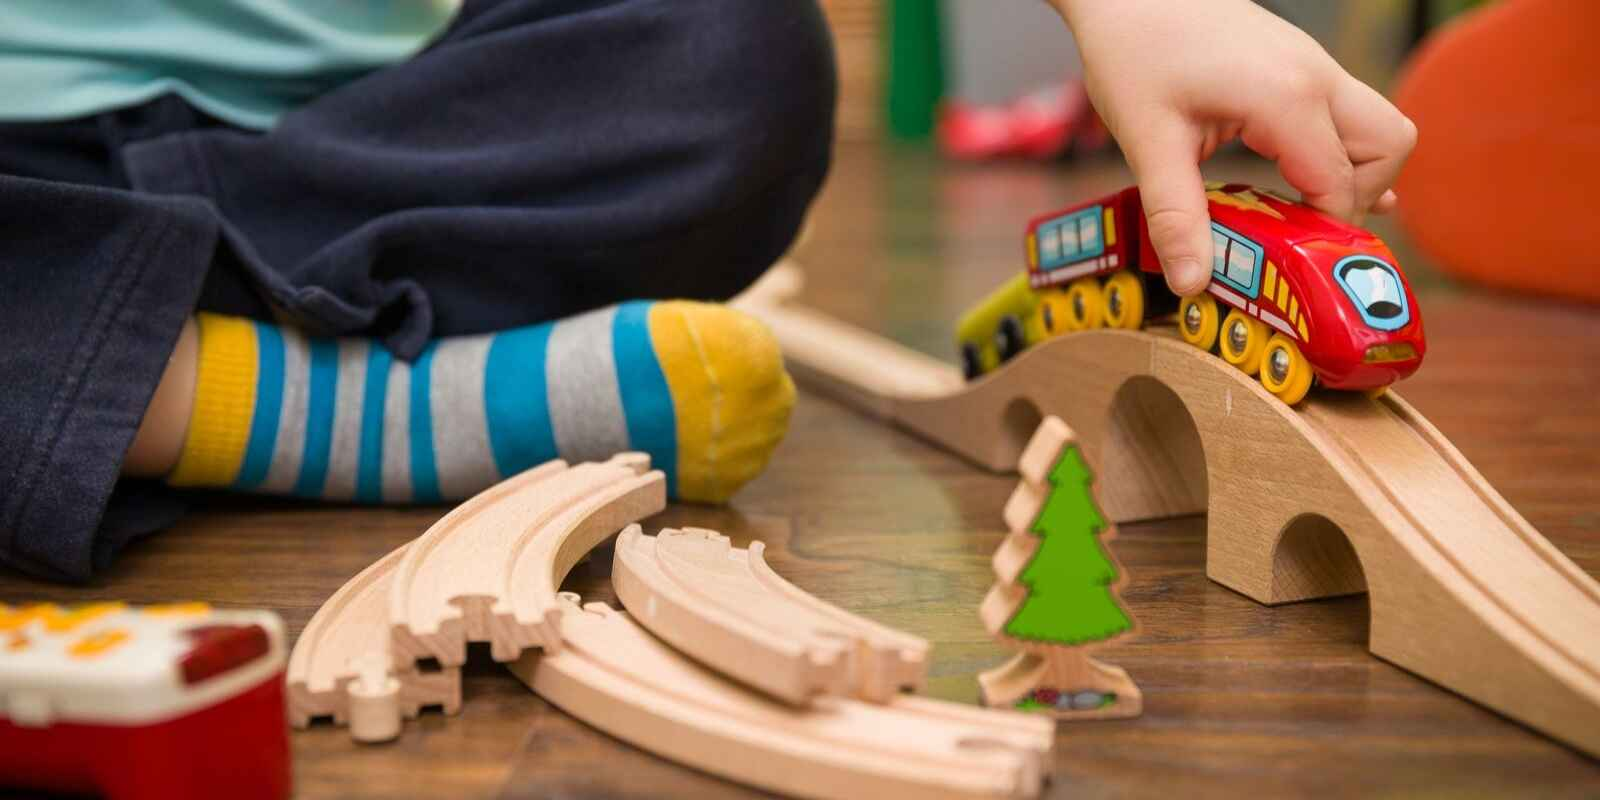 Wooden Train Track Set 16 Pieces Play Train Wood Toy Case Built in Railway Gift